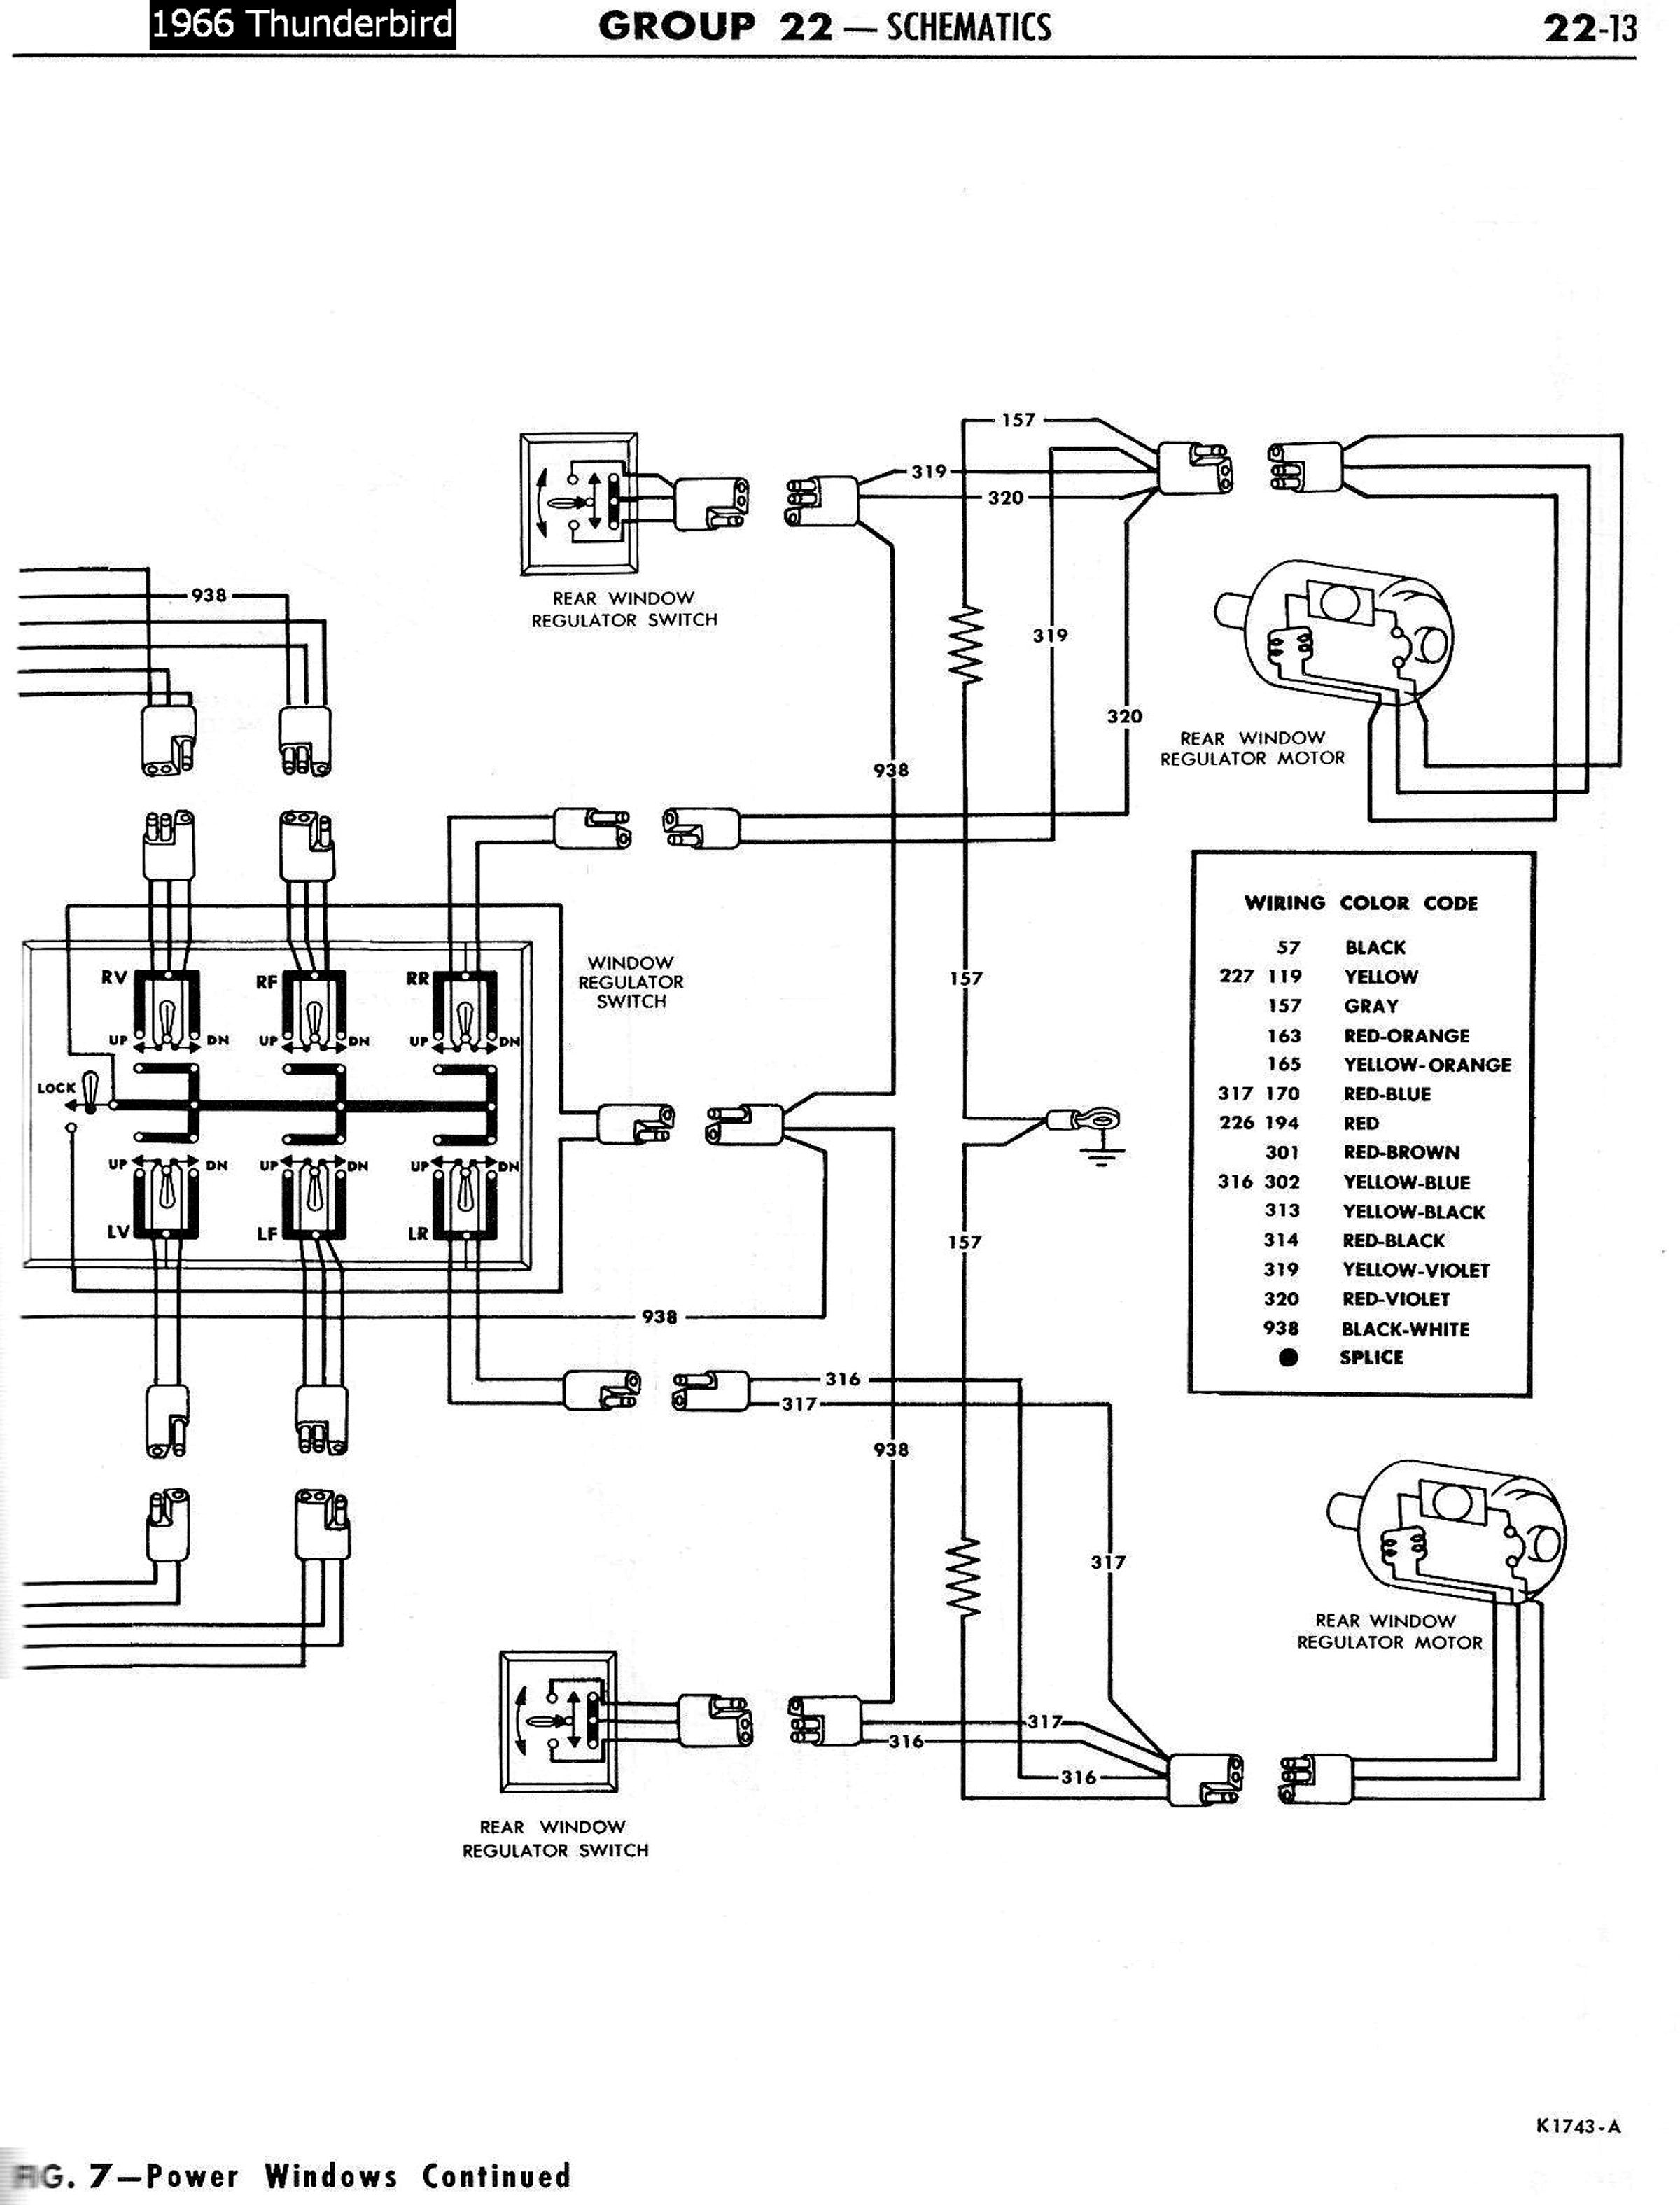 66TbirdPowerWindowsSchematicRight 1958 68 ford electrical schematics 1965 thunderbird wiring harness at bakdesigns.co